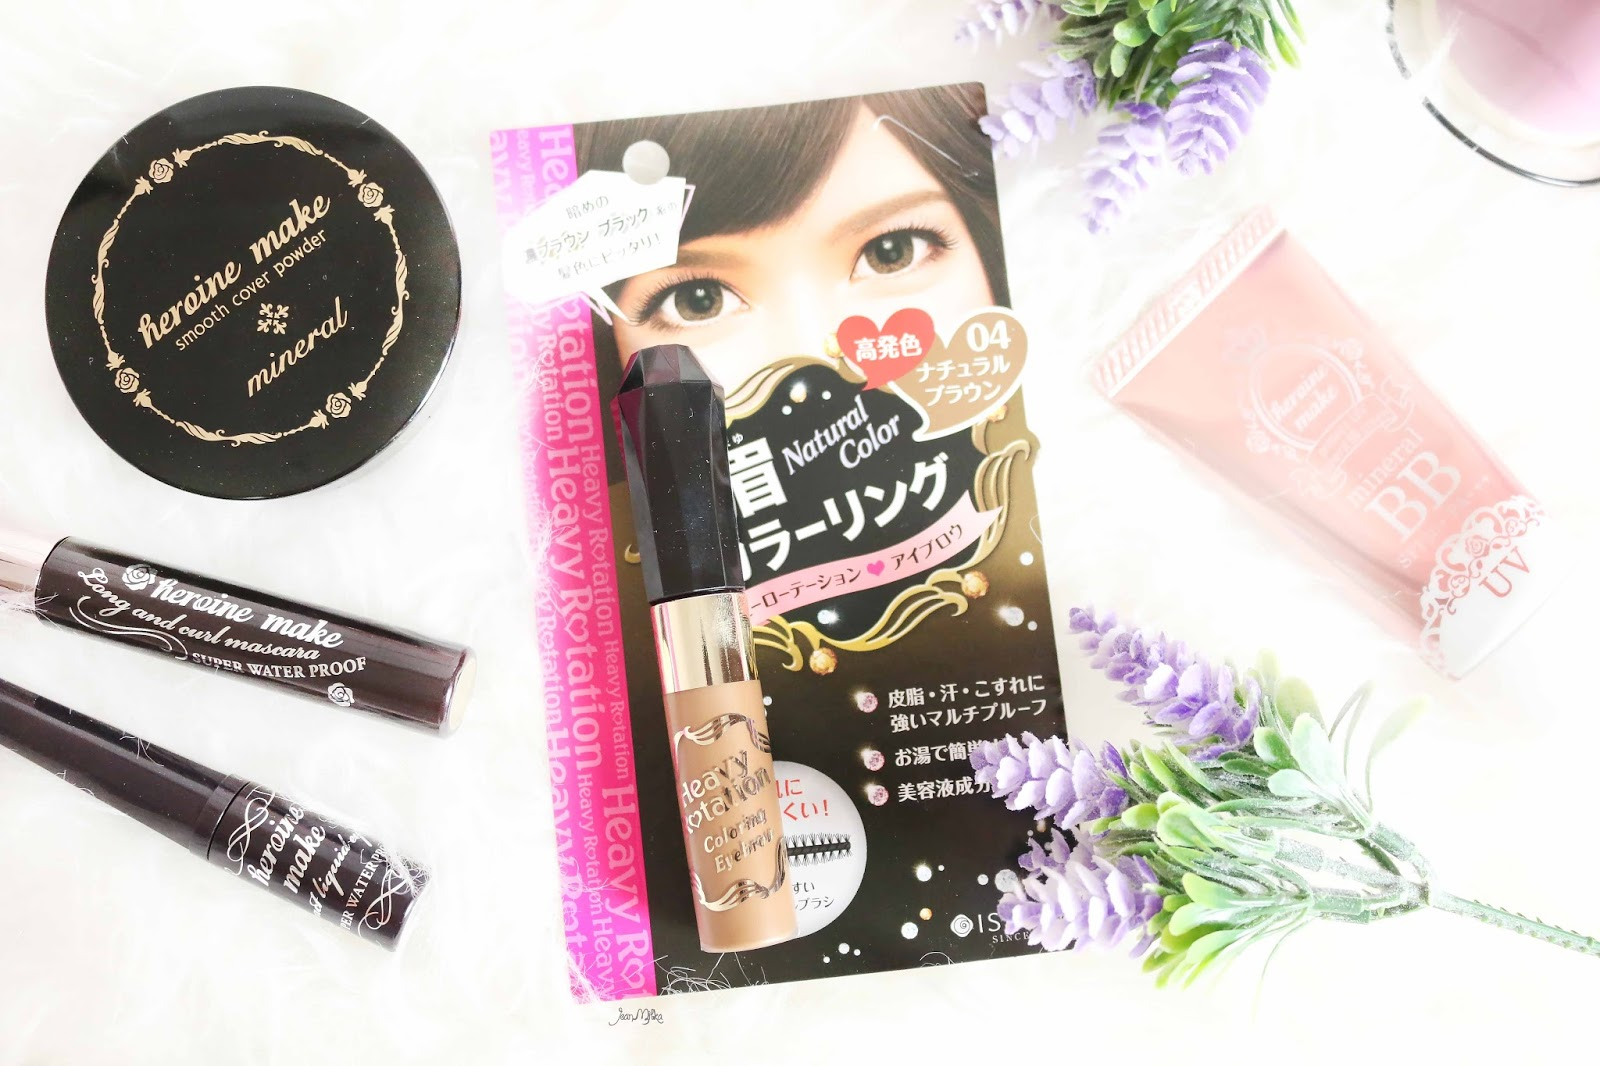 makeup, drugstore, makeup murah, review, beauty, beauty blog indonesia, makeup pemula, makeup untuk pemula, makeup murah indo, heavy rotation, coloring eyebrow